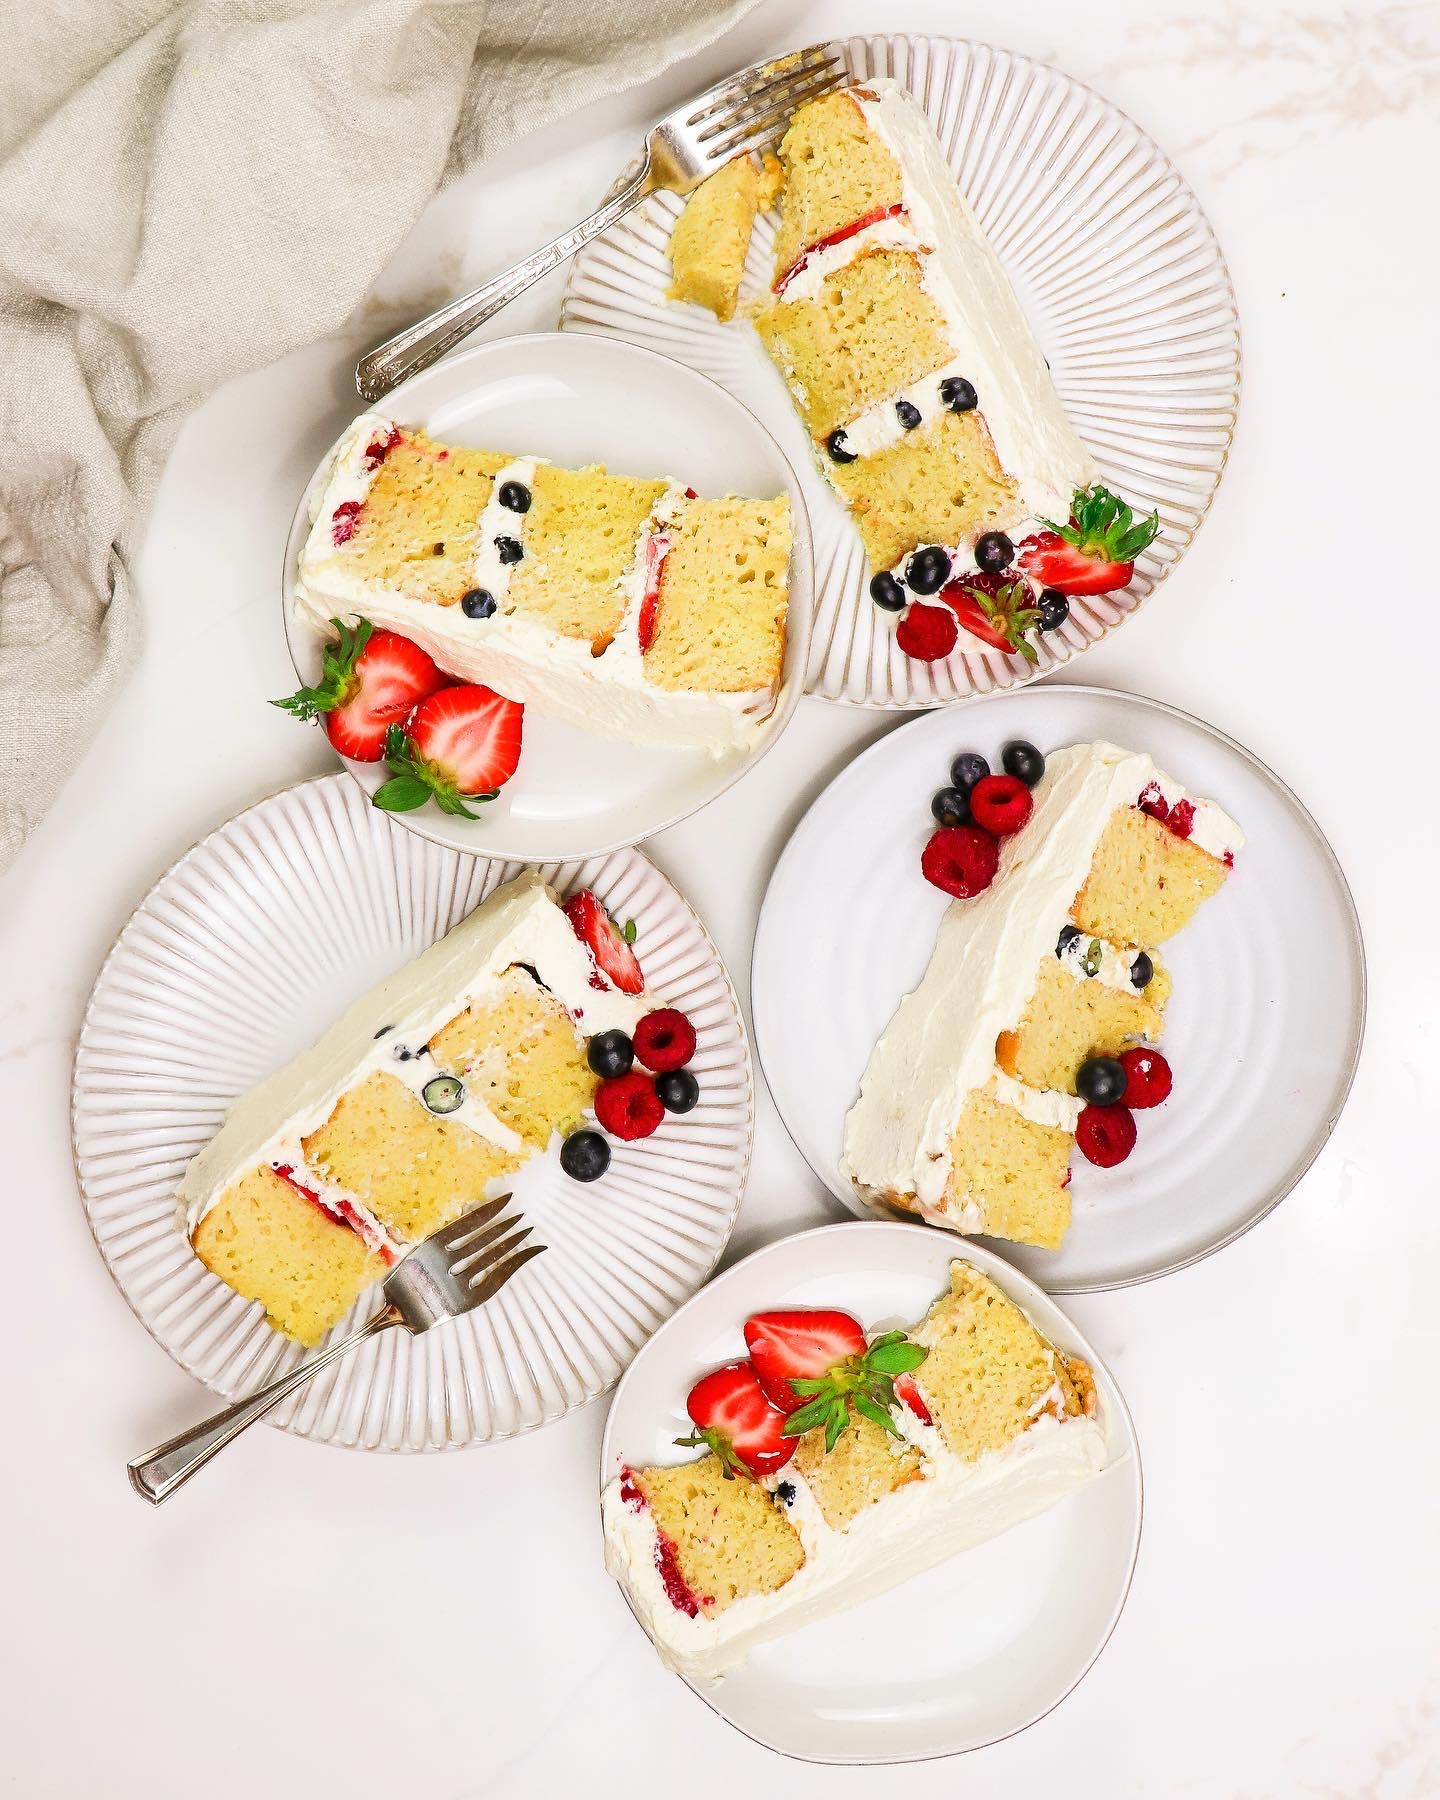 Layered Tres Leches Cake with Summer Berries